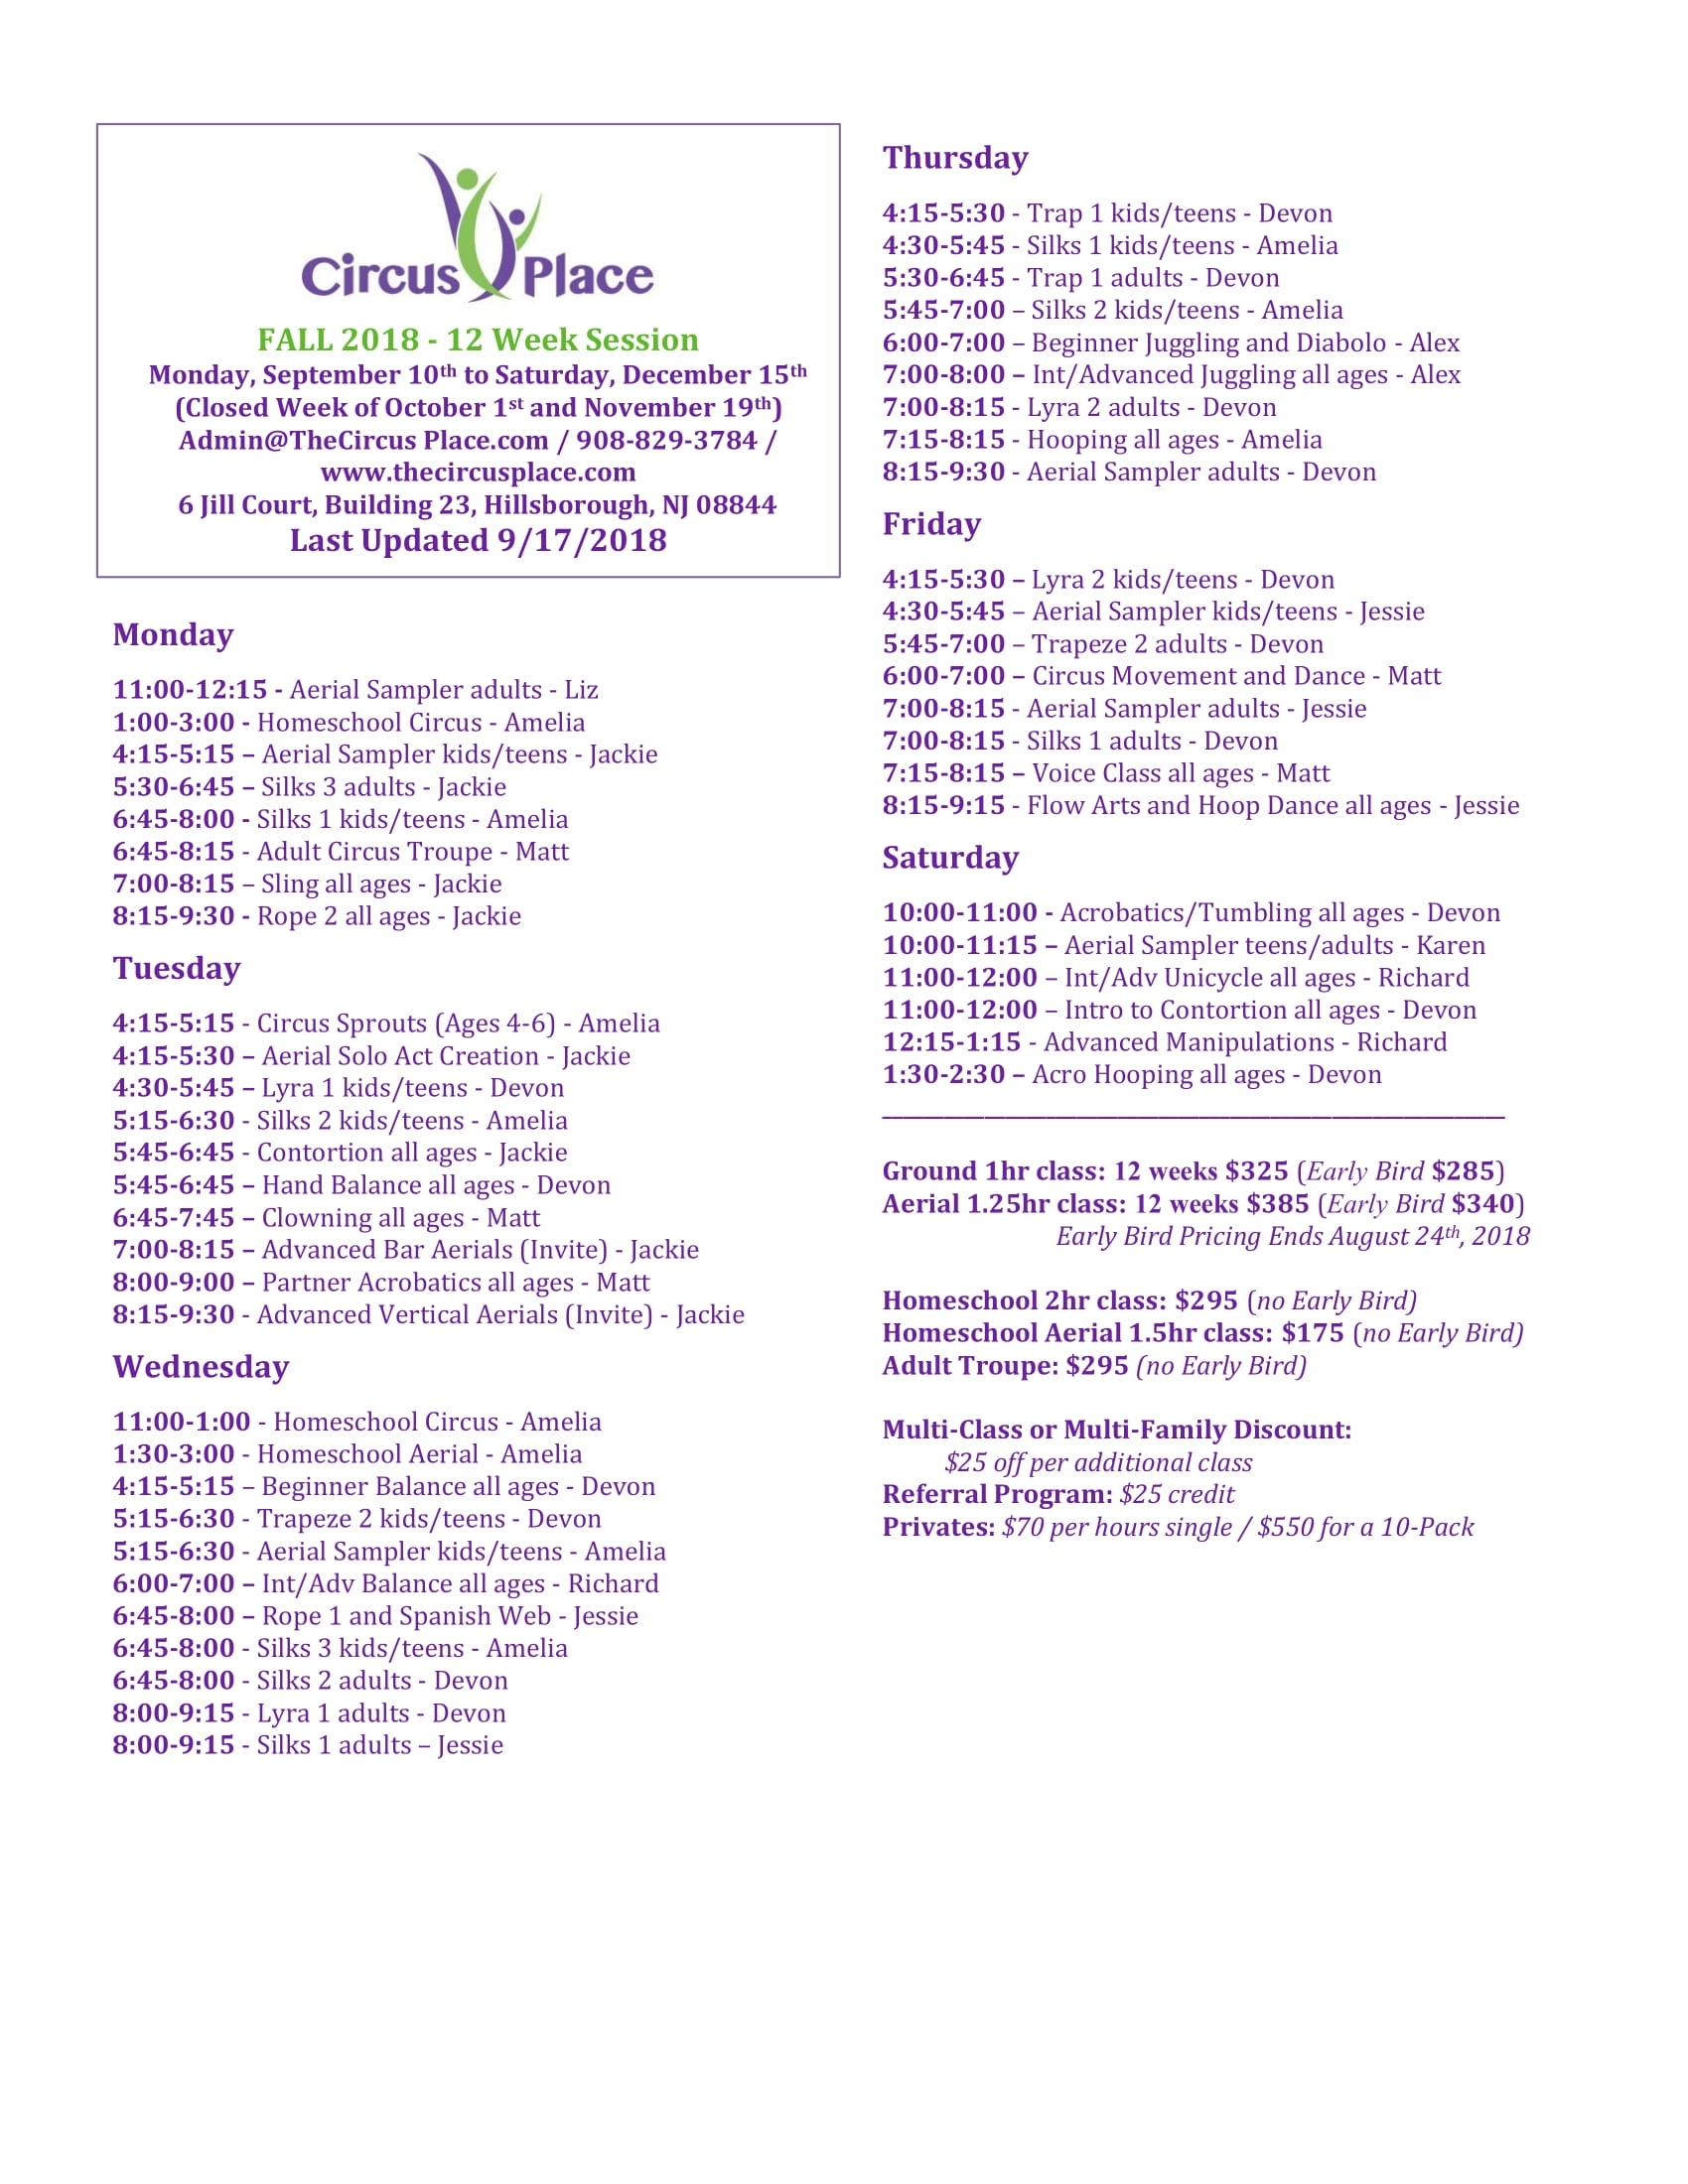 Circus Place, Hillsborough, Nj Fall 2018 Schedule | Circus Classes with 12 Hours In 12 Weeks Pdf Download